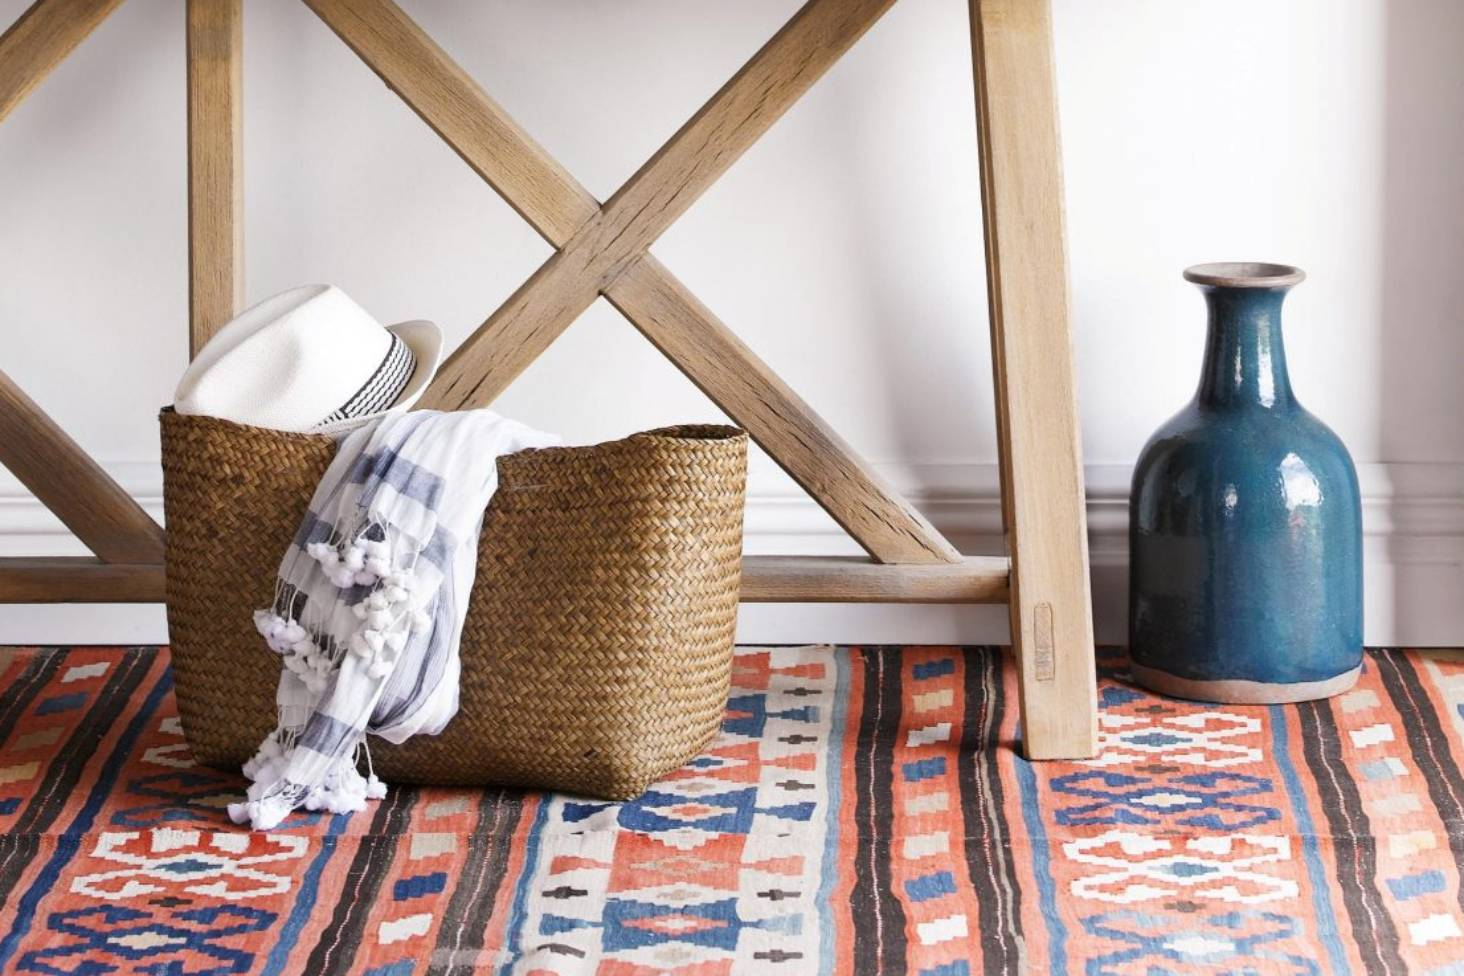 Two Kinds Of Baskets and Their Various Uses At Home